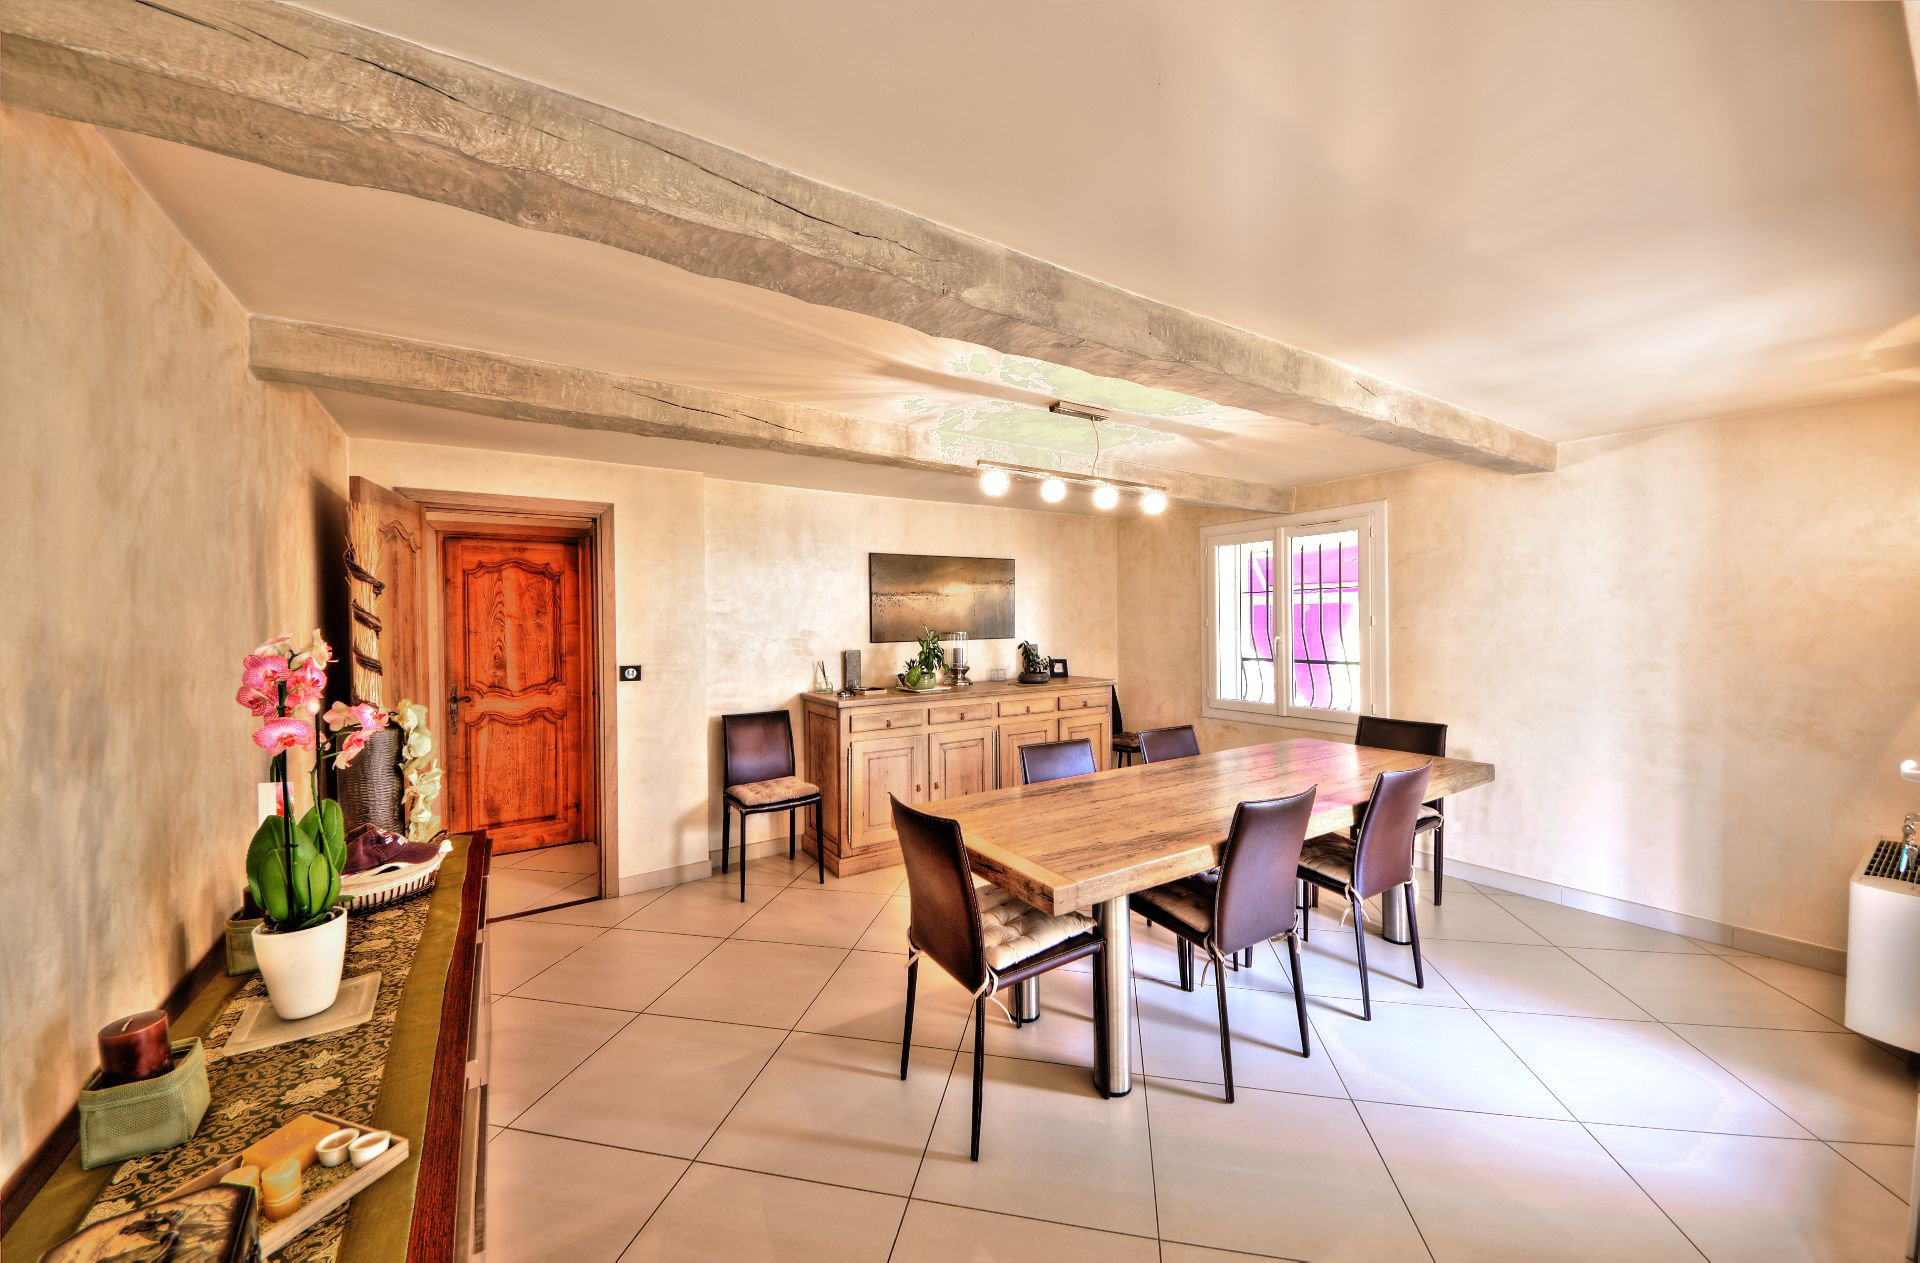 Dining room house 200 m², 4 bedrooms, outbuilding on 8000 m² agricultural area, Ampus, Var, Provence, Paca